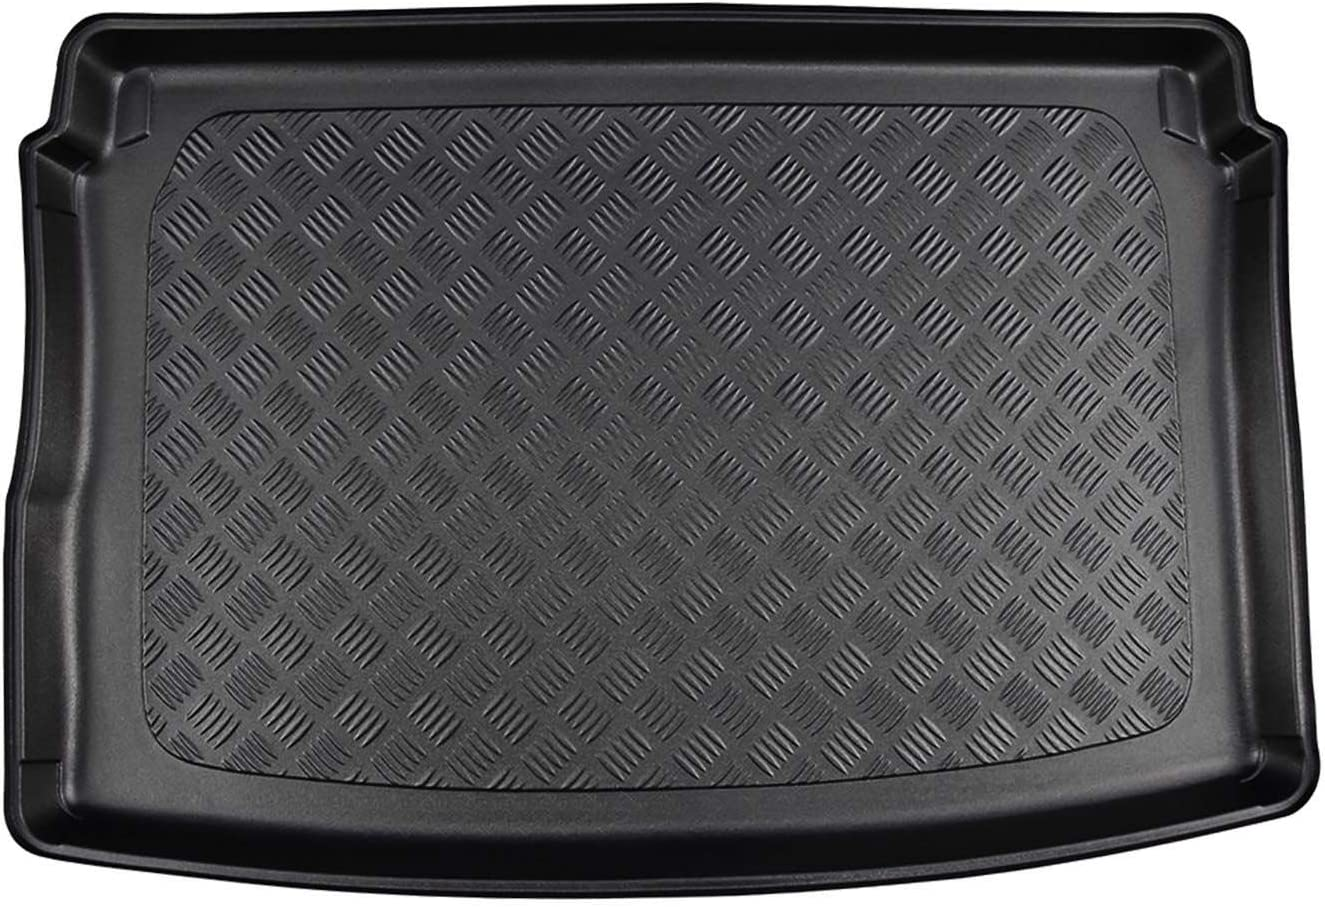 Nomad Auto Tailored Fit Durable Black Boot Liner Tray Mat Protector for Seat Arona